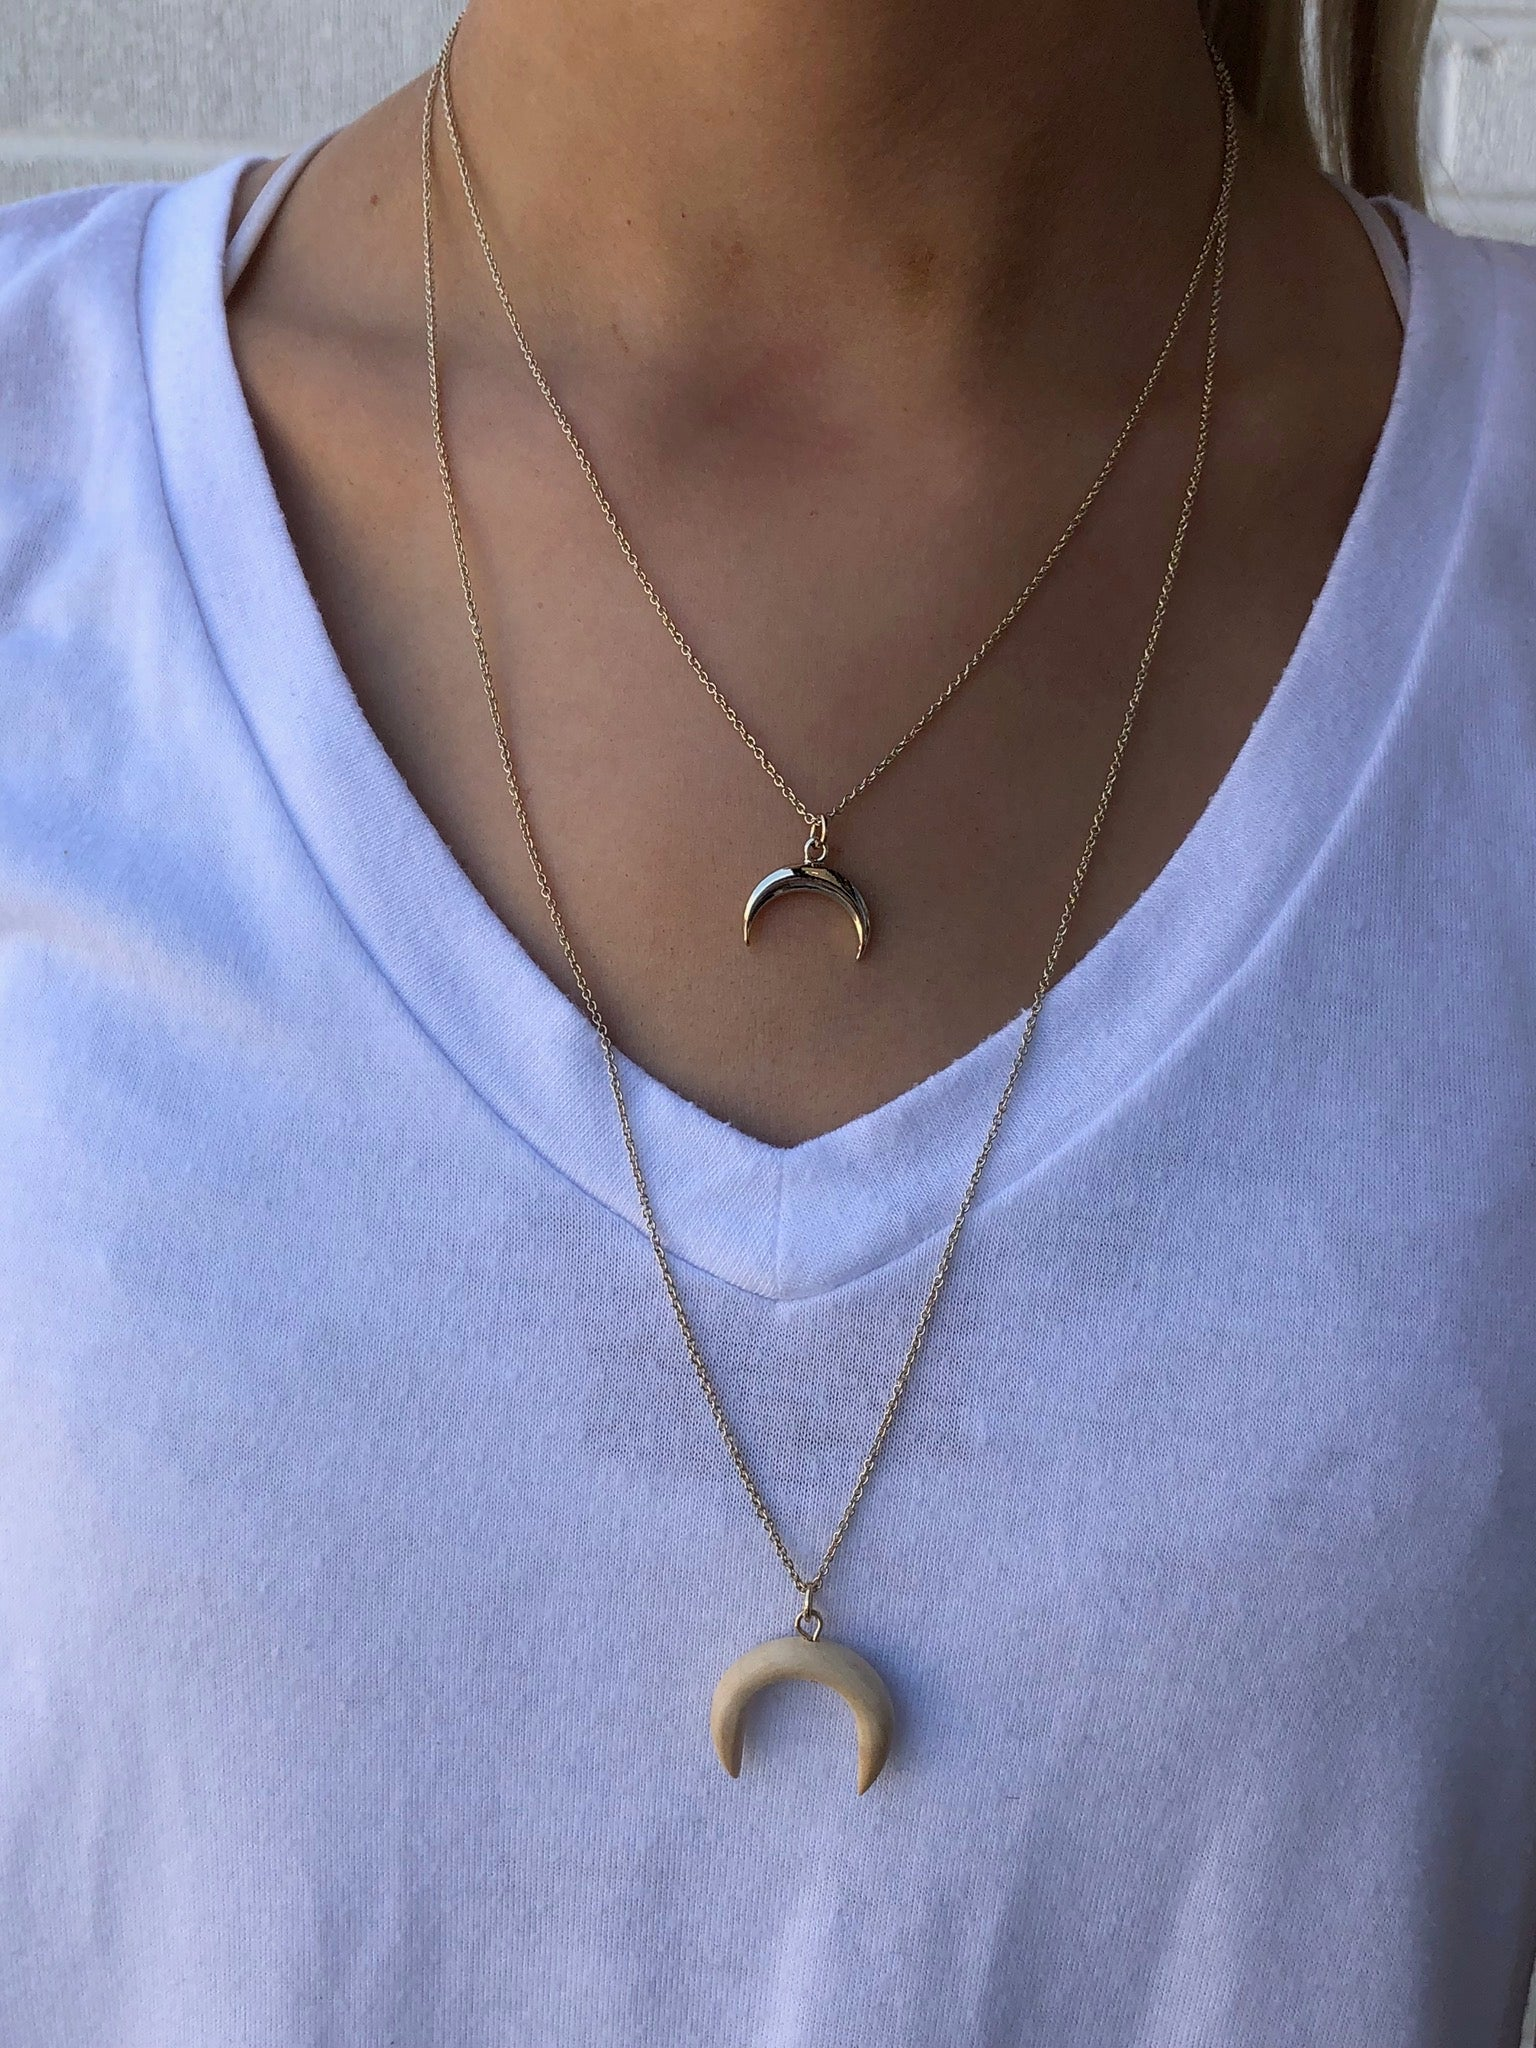 By The Light Of The Moon Layered Horn Necklace